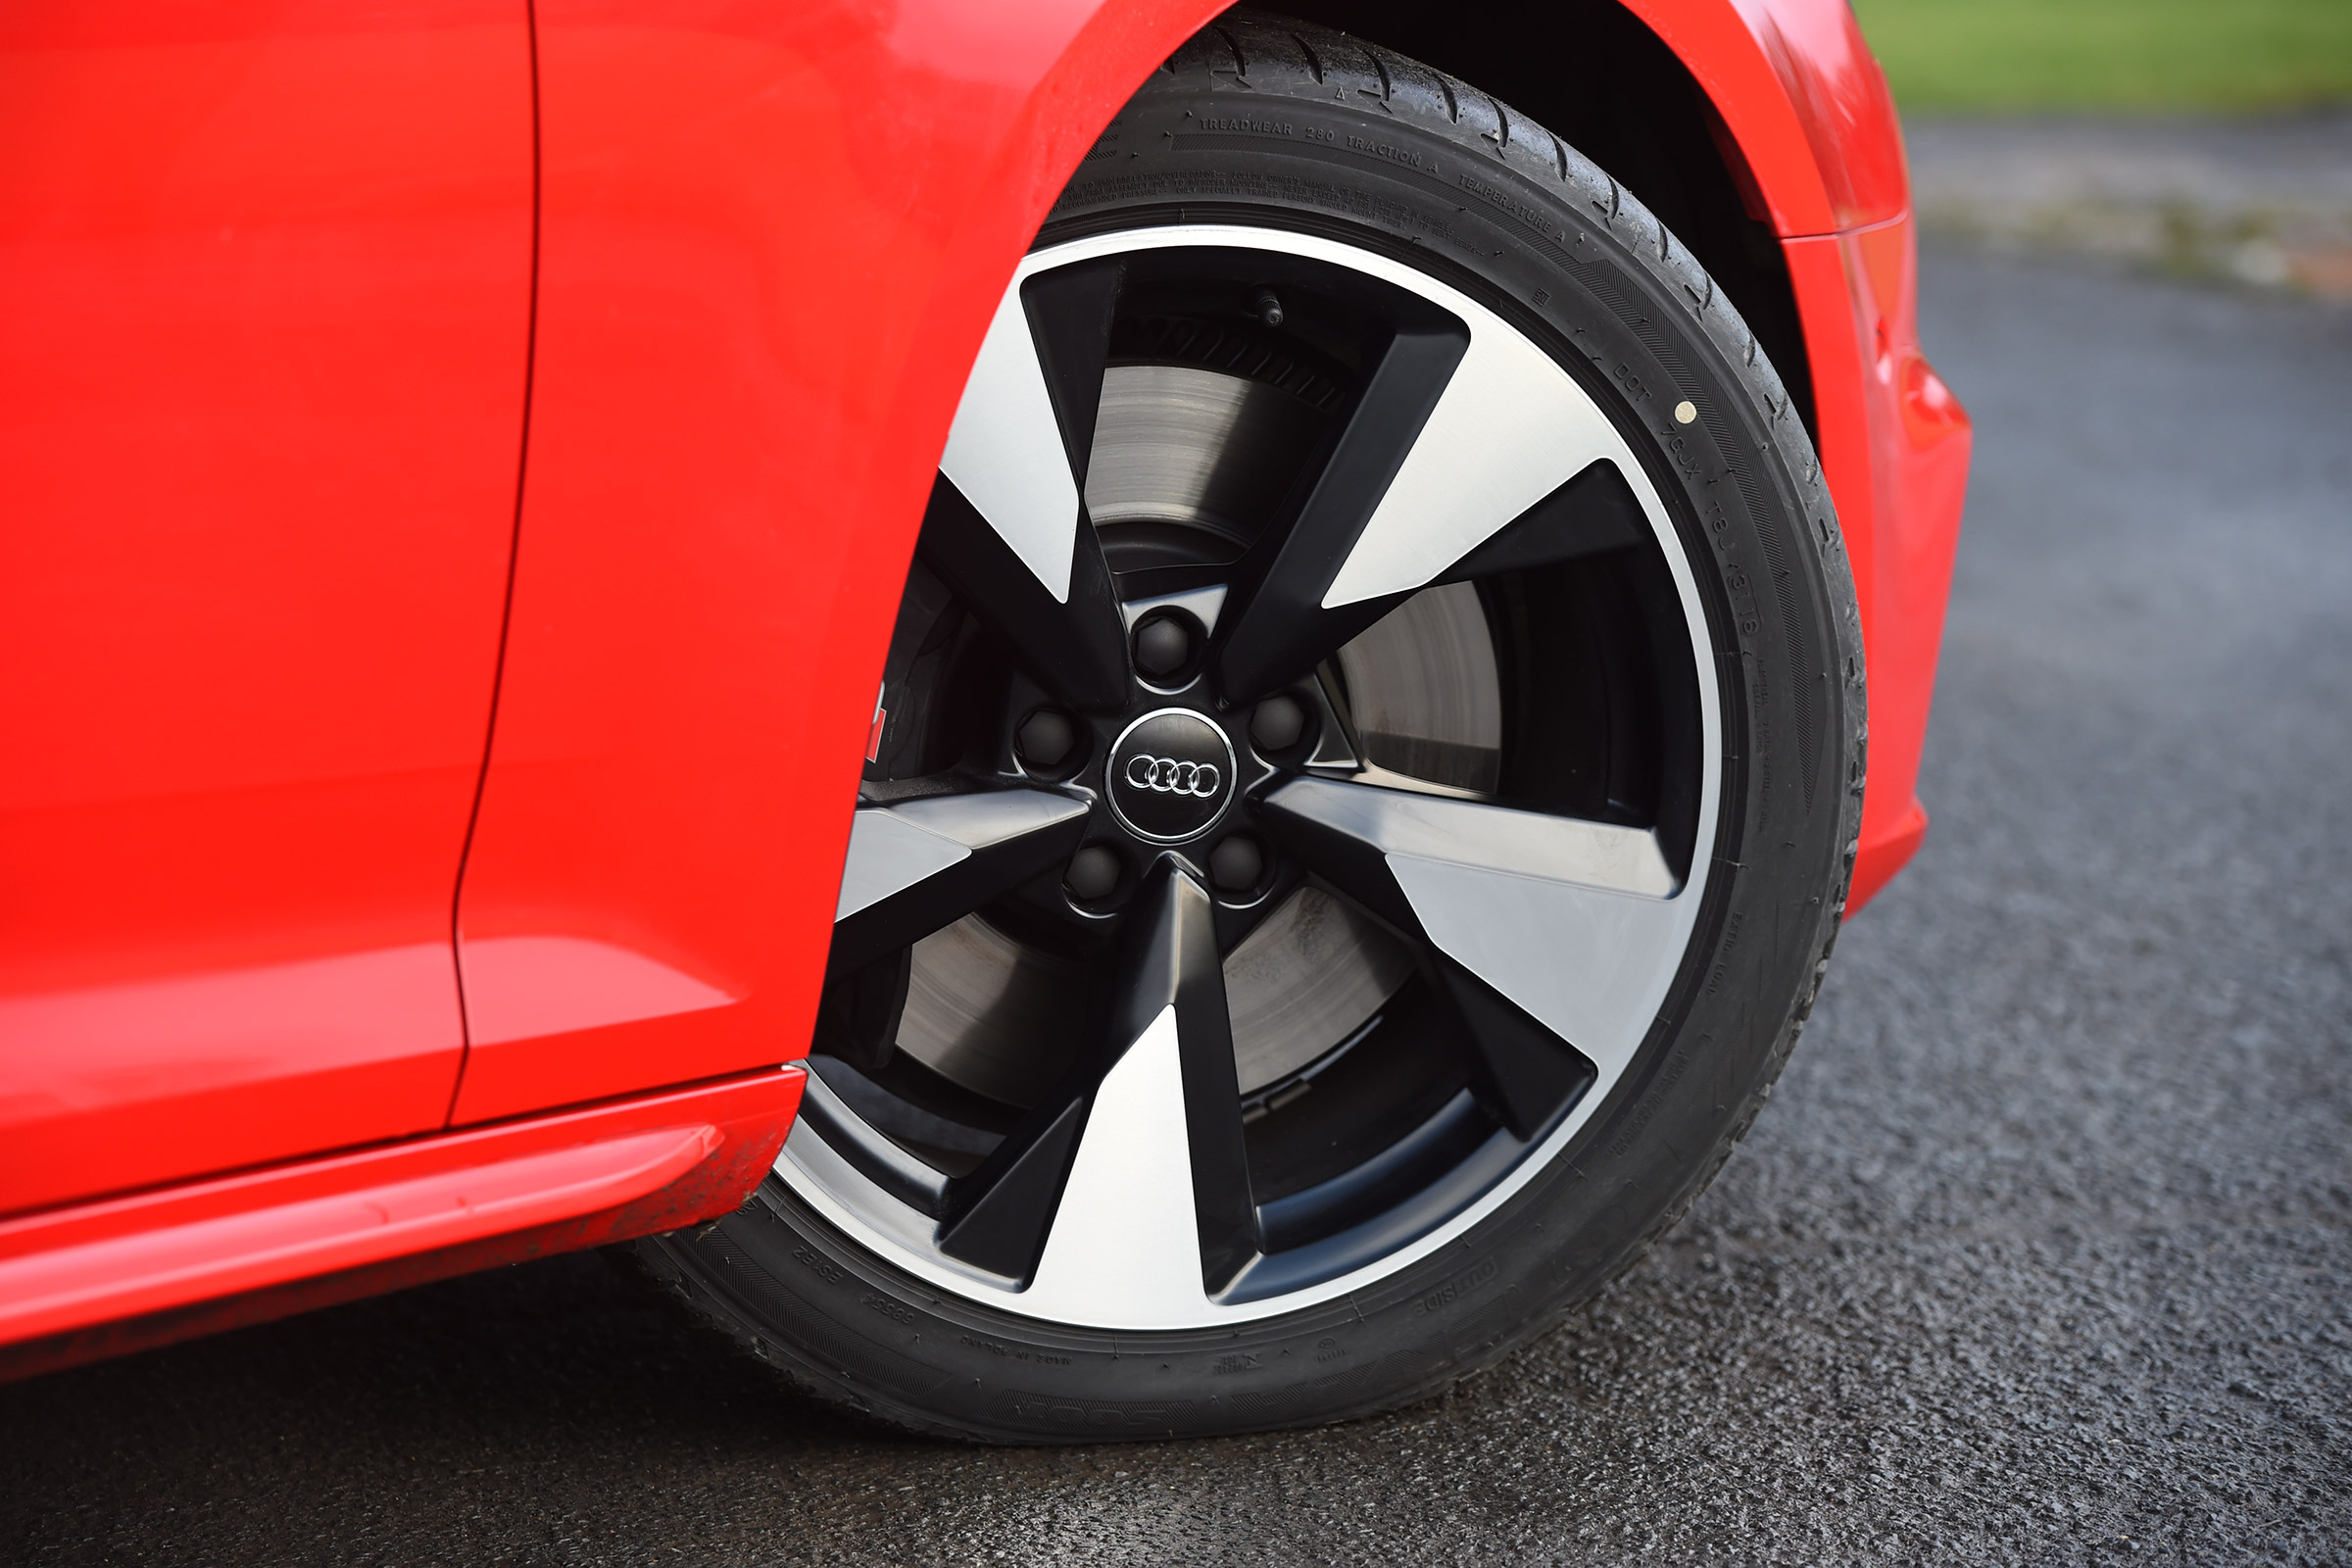 2017 Audi S4 Avant Exterior View Wheel Profile (Photo 6 of 17)